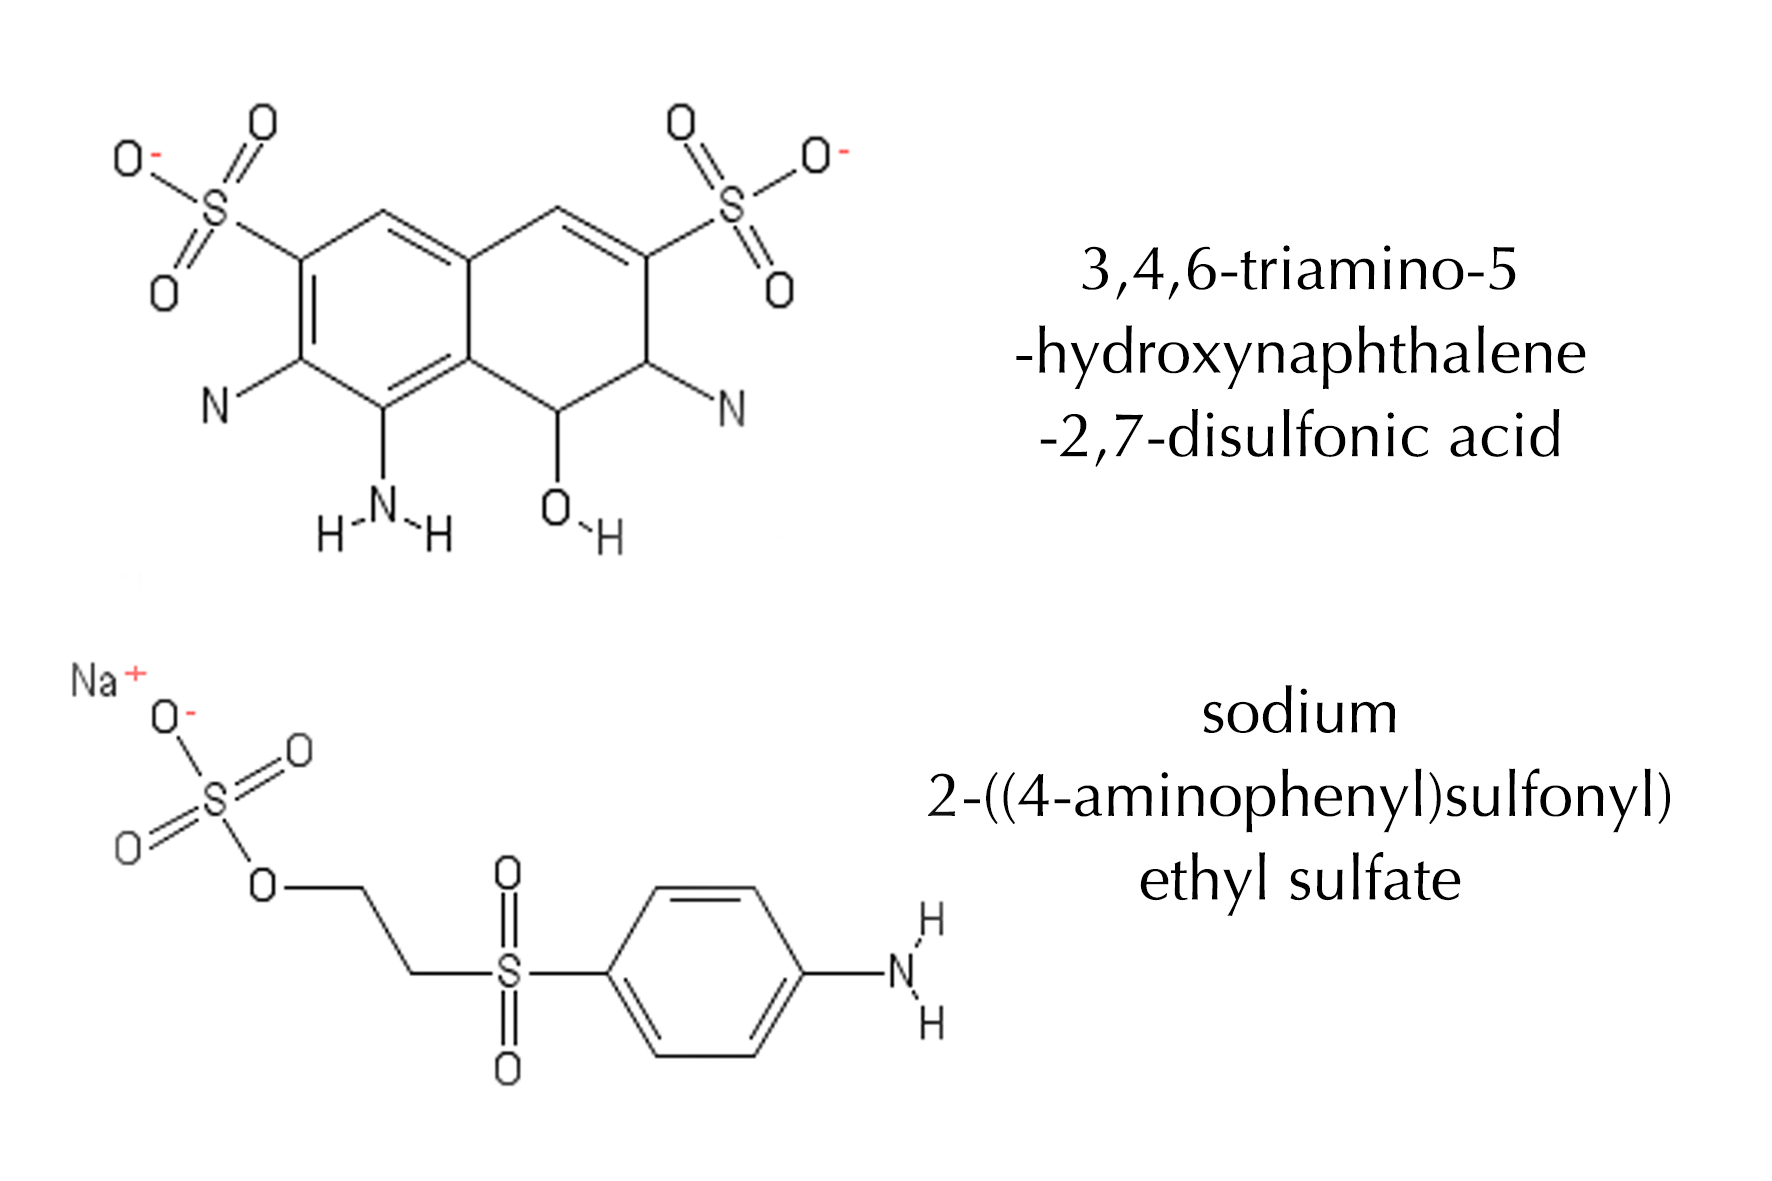 Two possible intermediate products (toxic) from decoloursing the Reactive Black 5